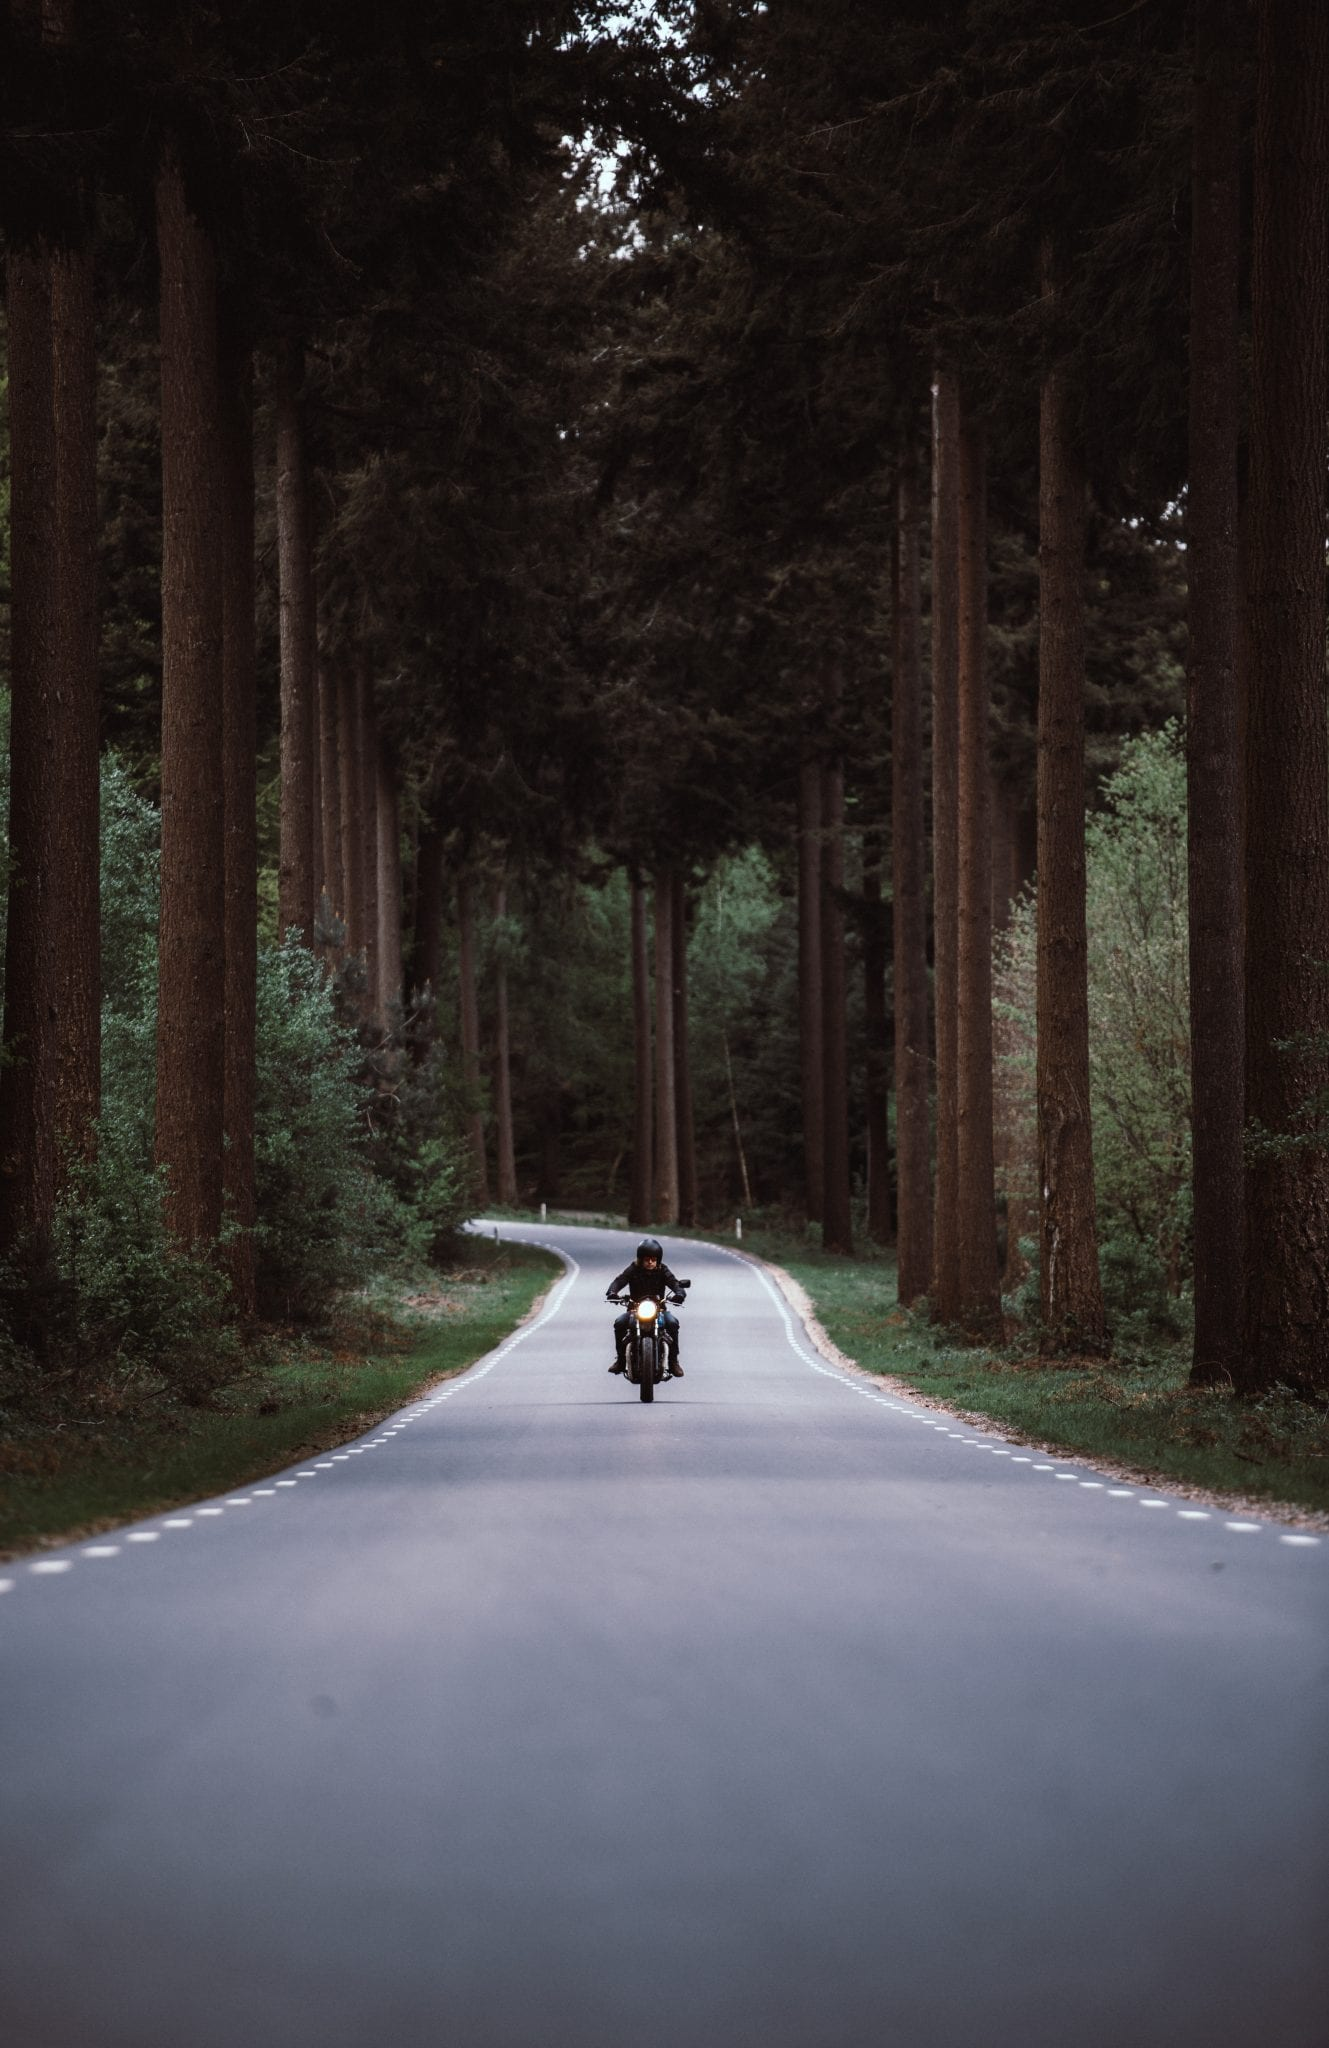 How to Find the Best Motorcycle Accident Lawyer Near You